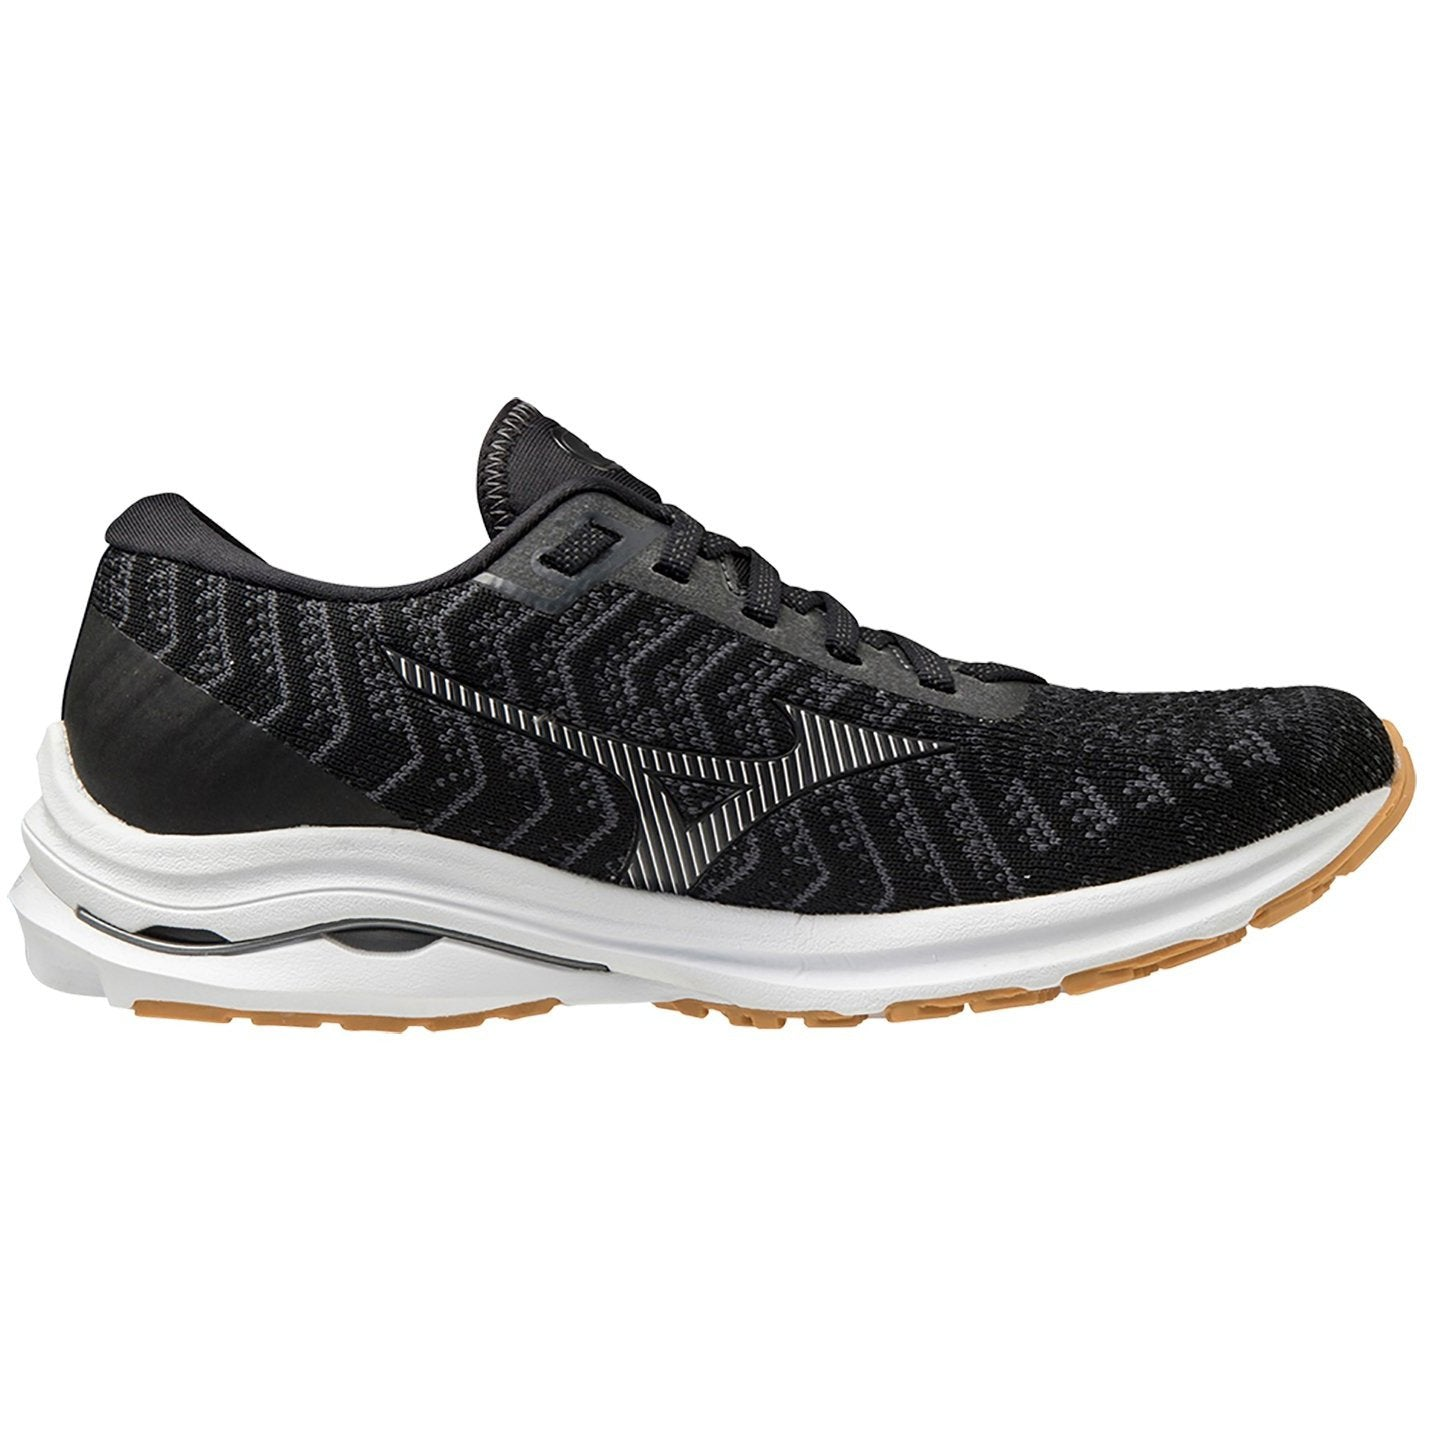 Mizuno Wave Rider 24 Waveknit Womens - Sole Motive